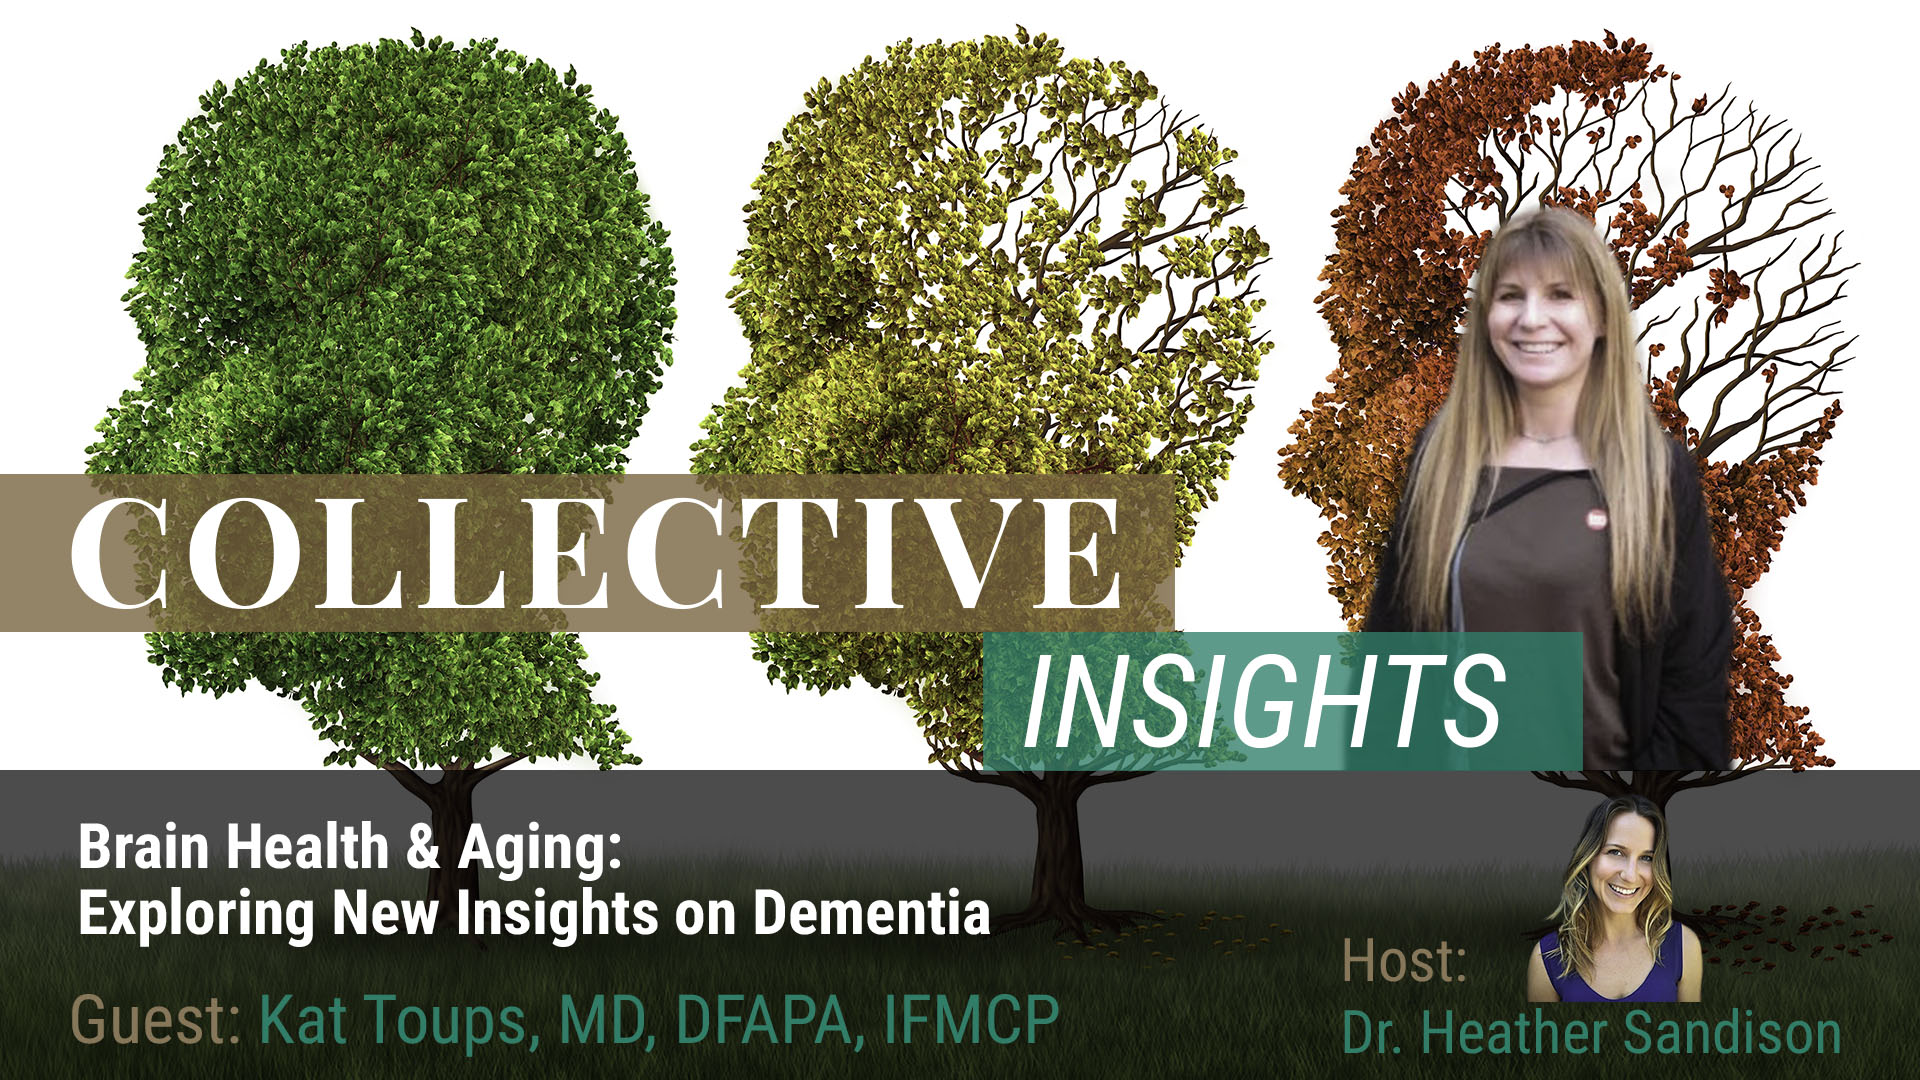 Brain Health & Aging: Exploring New Insights on Dementia